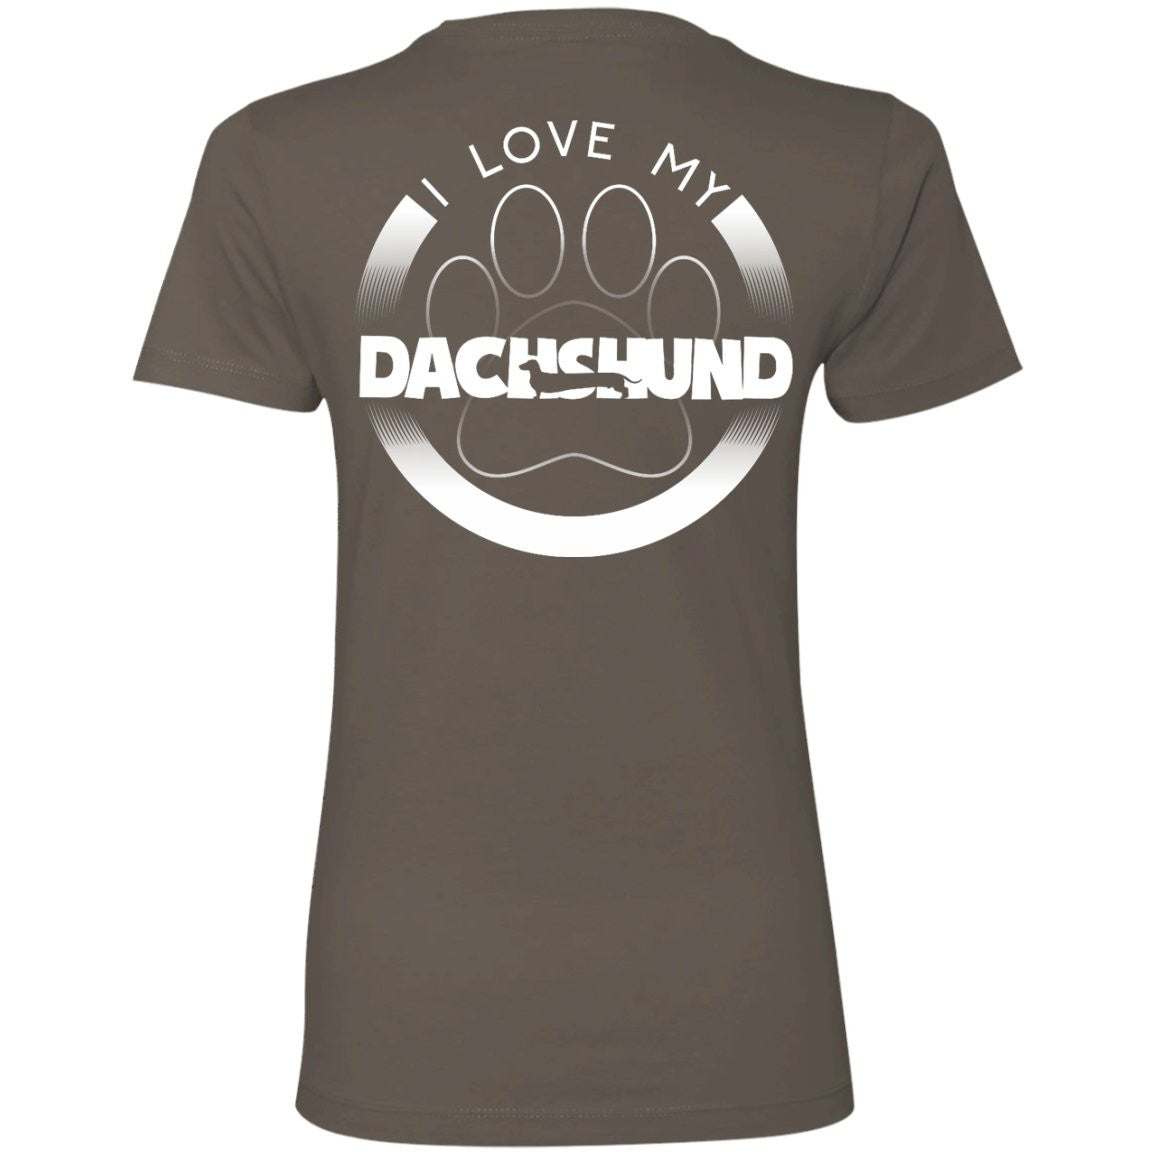 I LOVE MY DACHSHUND (Paw Design) - Back Design -  Next Level Ladies' Boyfriend Tee